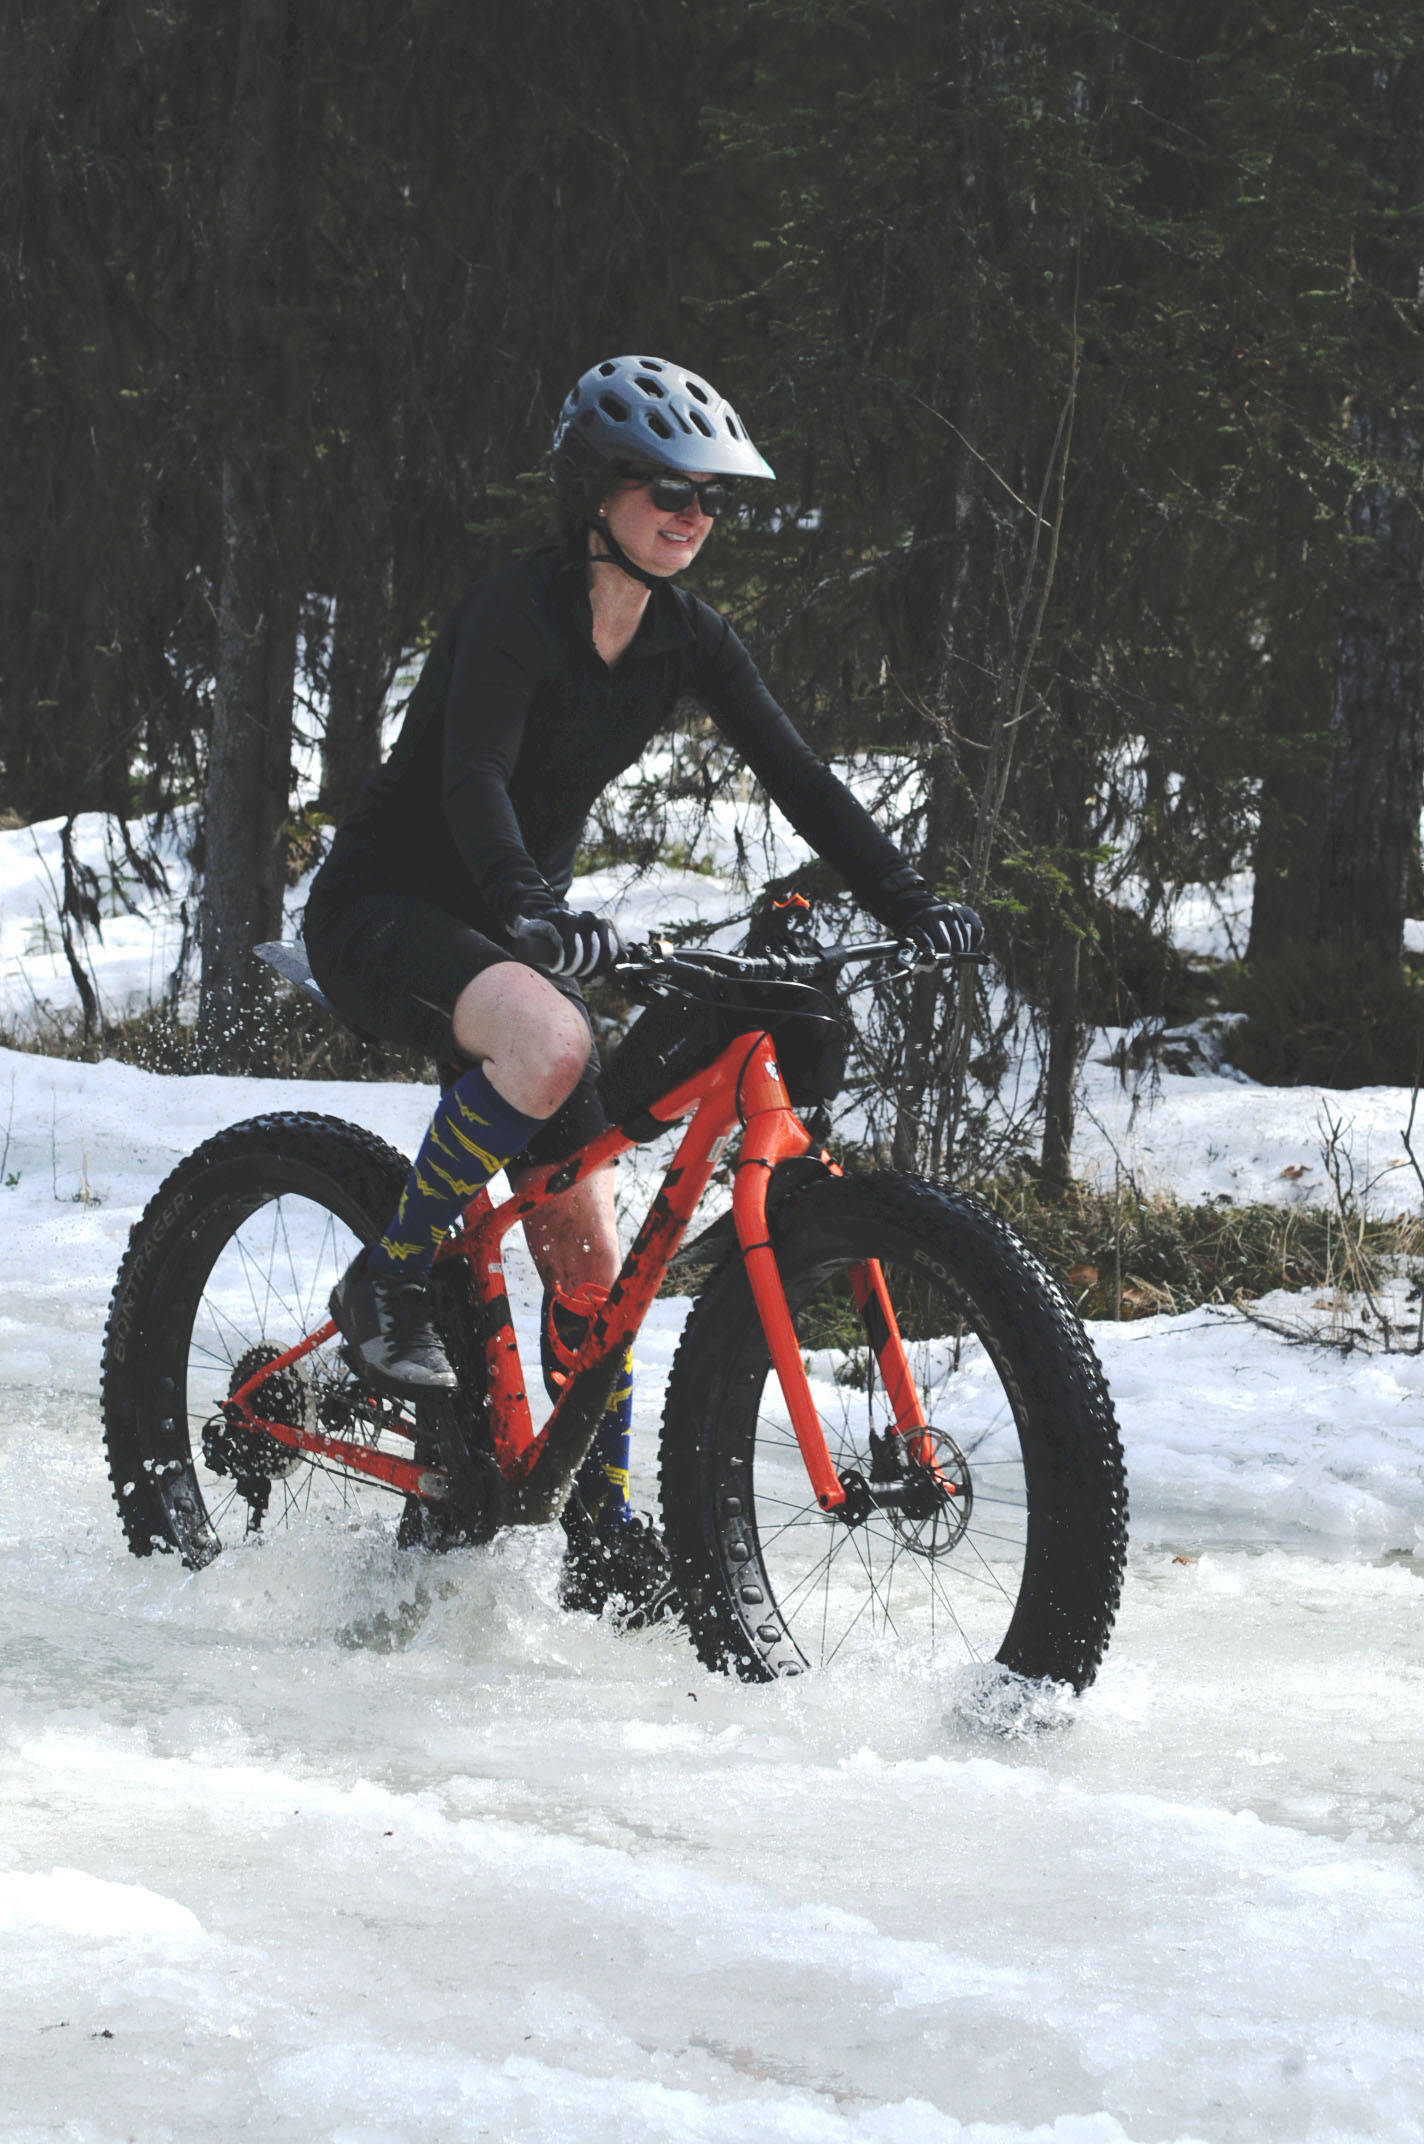 Jen Showalter of Kenai navigates her fatbike through a deep icy puddle on the Wolverine Trail during the 2018 Choose Your Weapon race at Tsalteshi Trails on Sunday, April 15, 2018 in Soldotna, Alaska. Racers completed two 5-kilometer laps around the lower trails by running, biking or skiing, with the option of switching between laps for extra points. Most of the trails had some snow with patches of wet mud sprinkled throughout as spring temperatures begin to dominate the central Kenai Peninsula. (Photo by Elizabeth Earl/Peninsula Clarion)